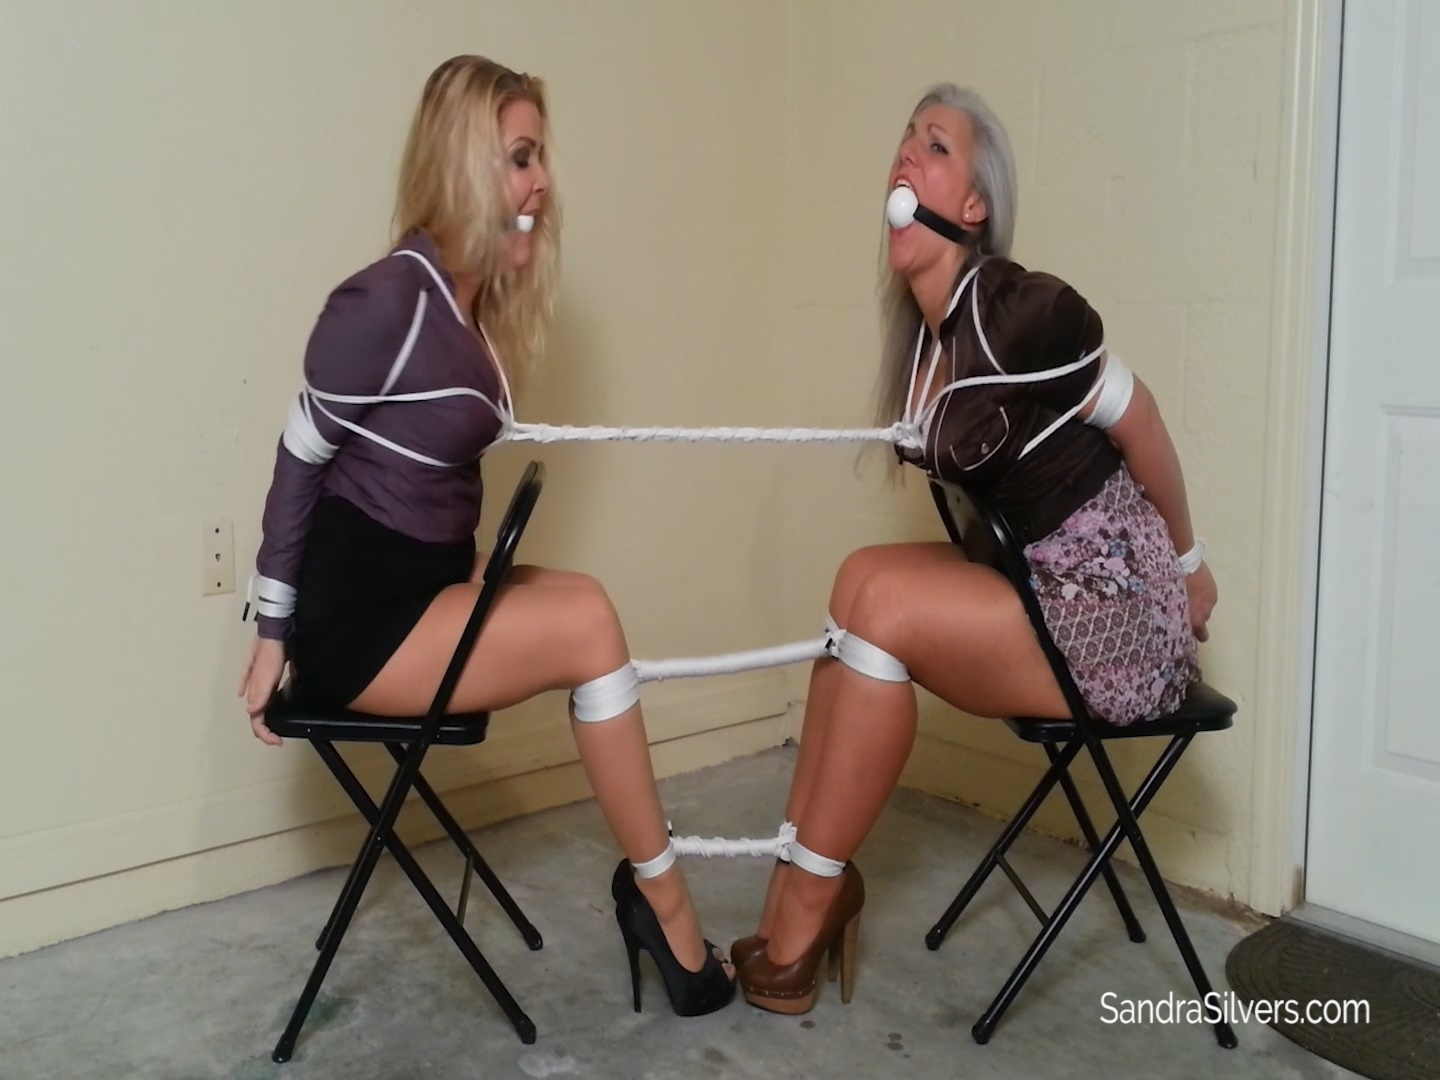 MILF Lawyer & Her Secretary Tightly Tied Together Get Vet Wrapped on Screen Over their Ballgags by Cleint